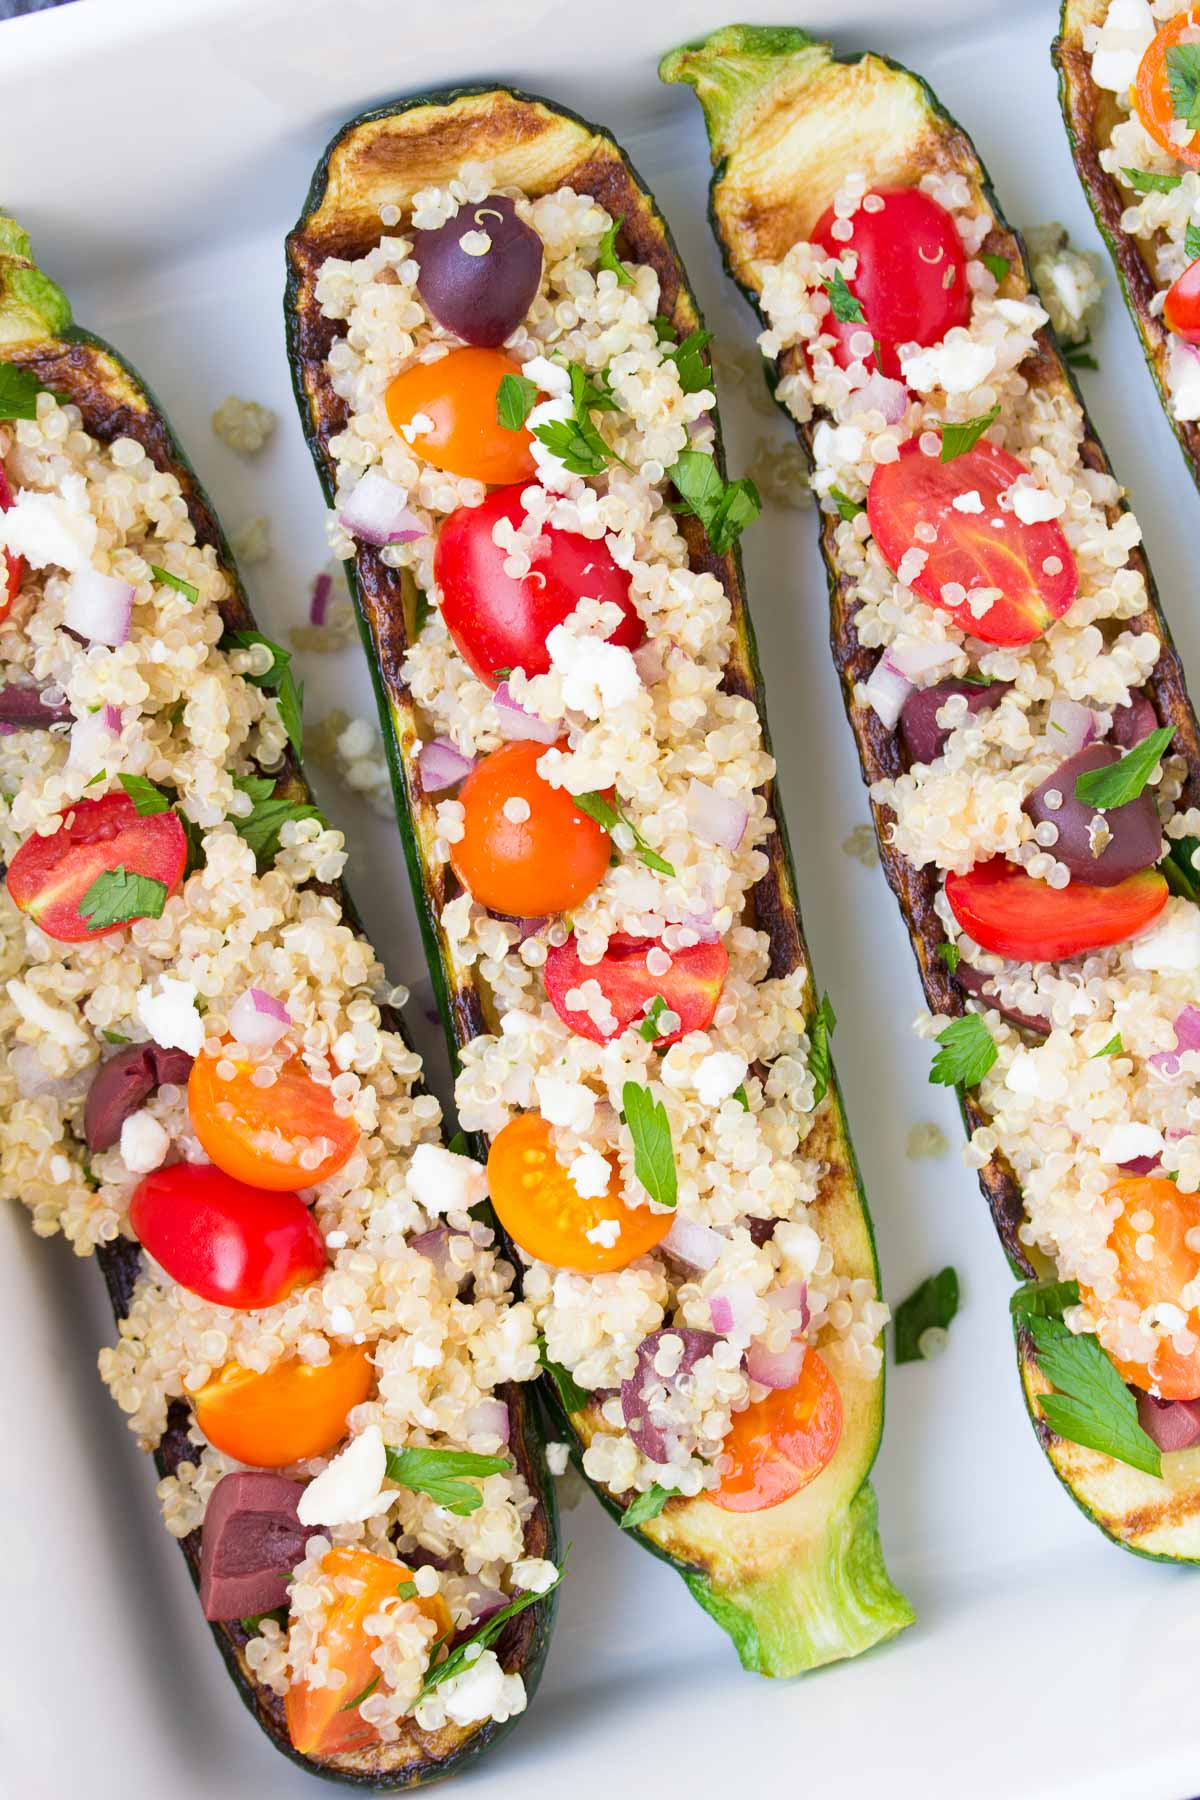 Zucchini Boats stuffed with olives, tomatoes, and feta.